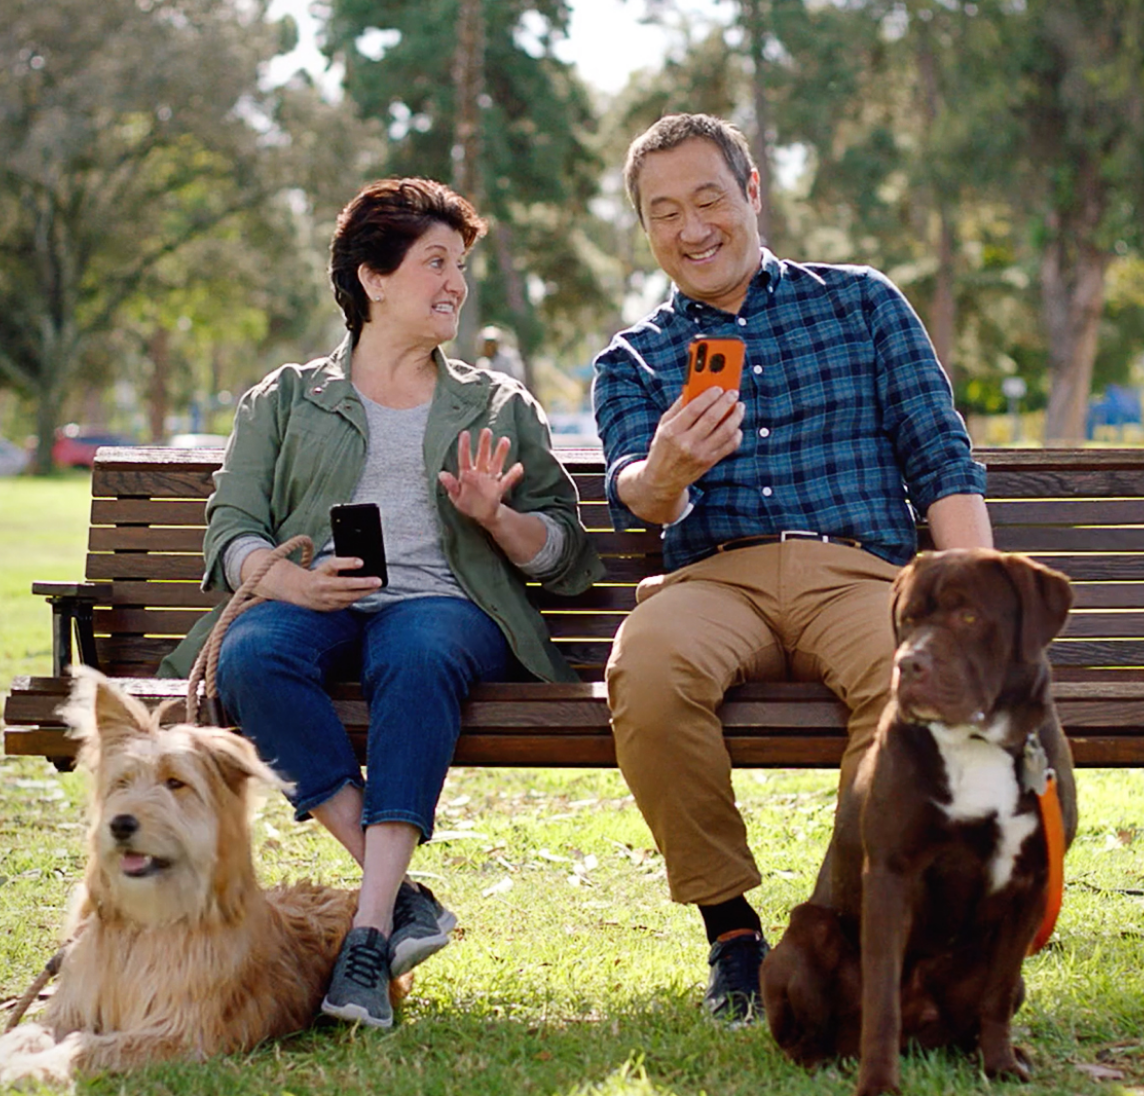 Two people sitting on a park bench talking with their two dogs nearby